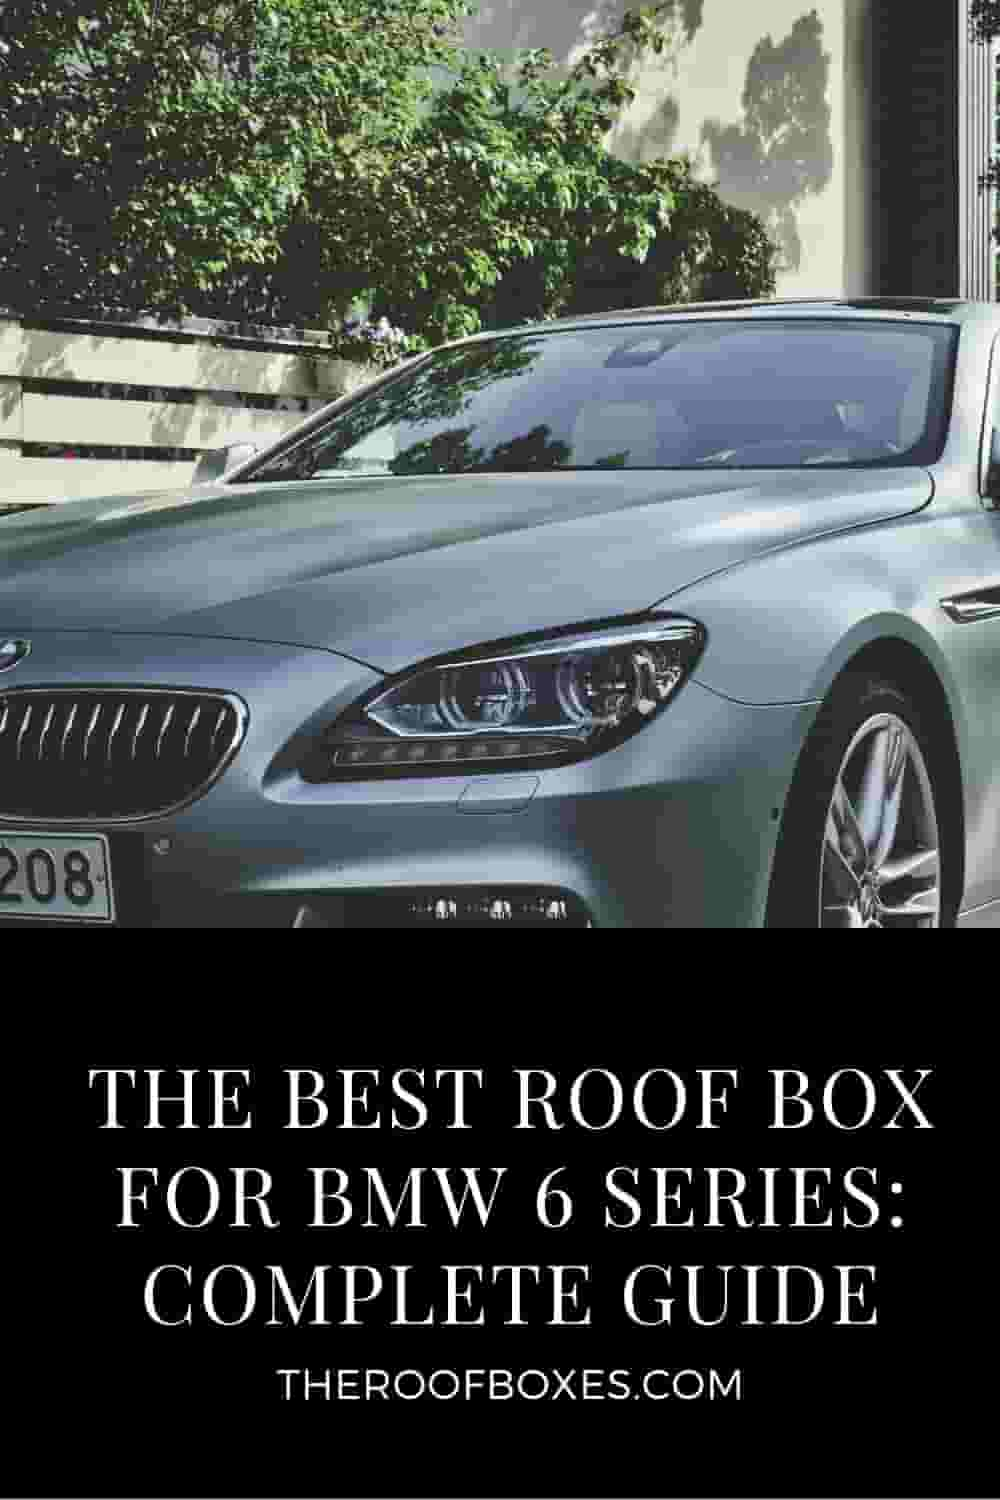 Roof Box for BMW 6 Series – Reviews and Comparison